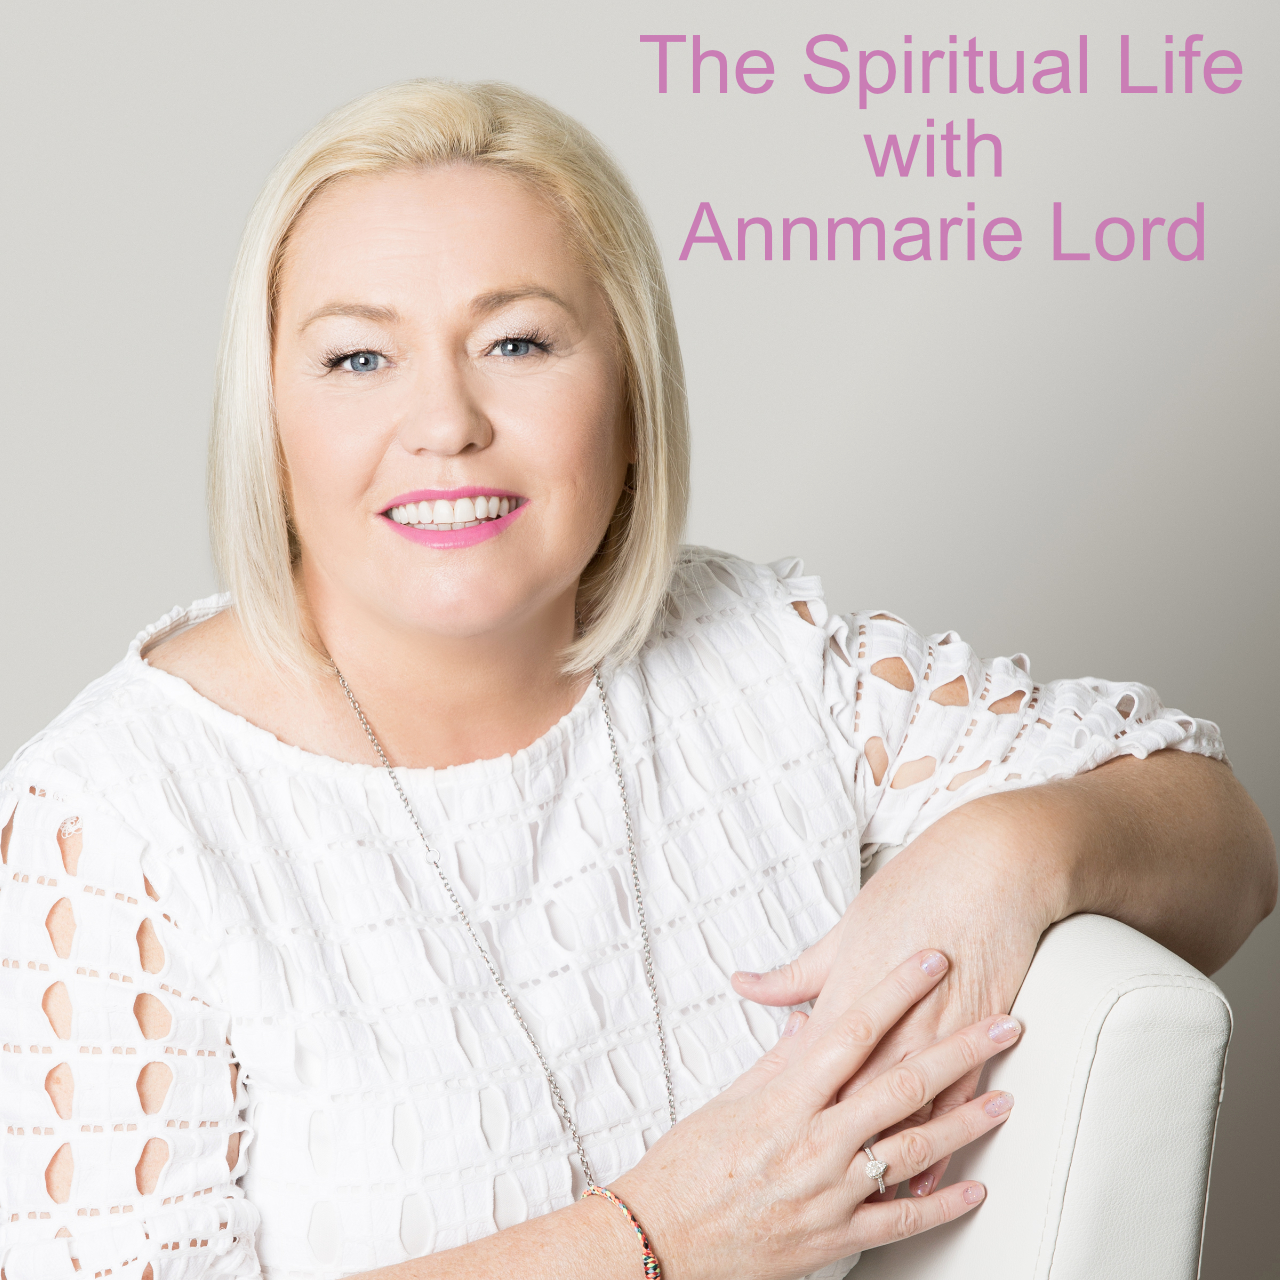 The Spiritual Life With Annmarie Lord